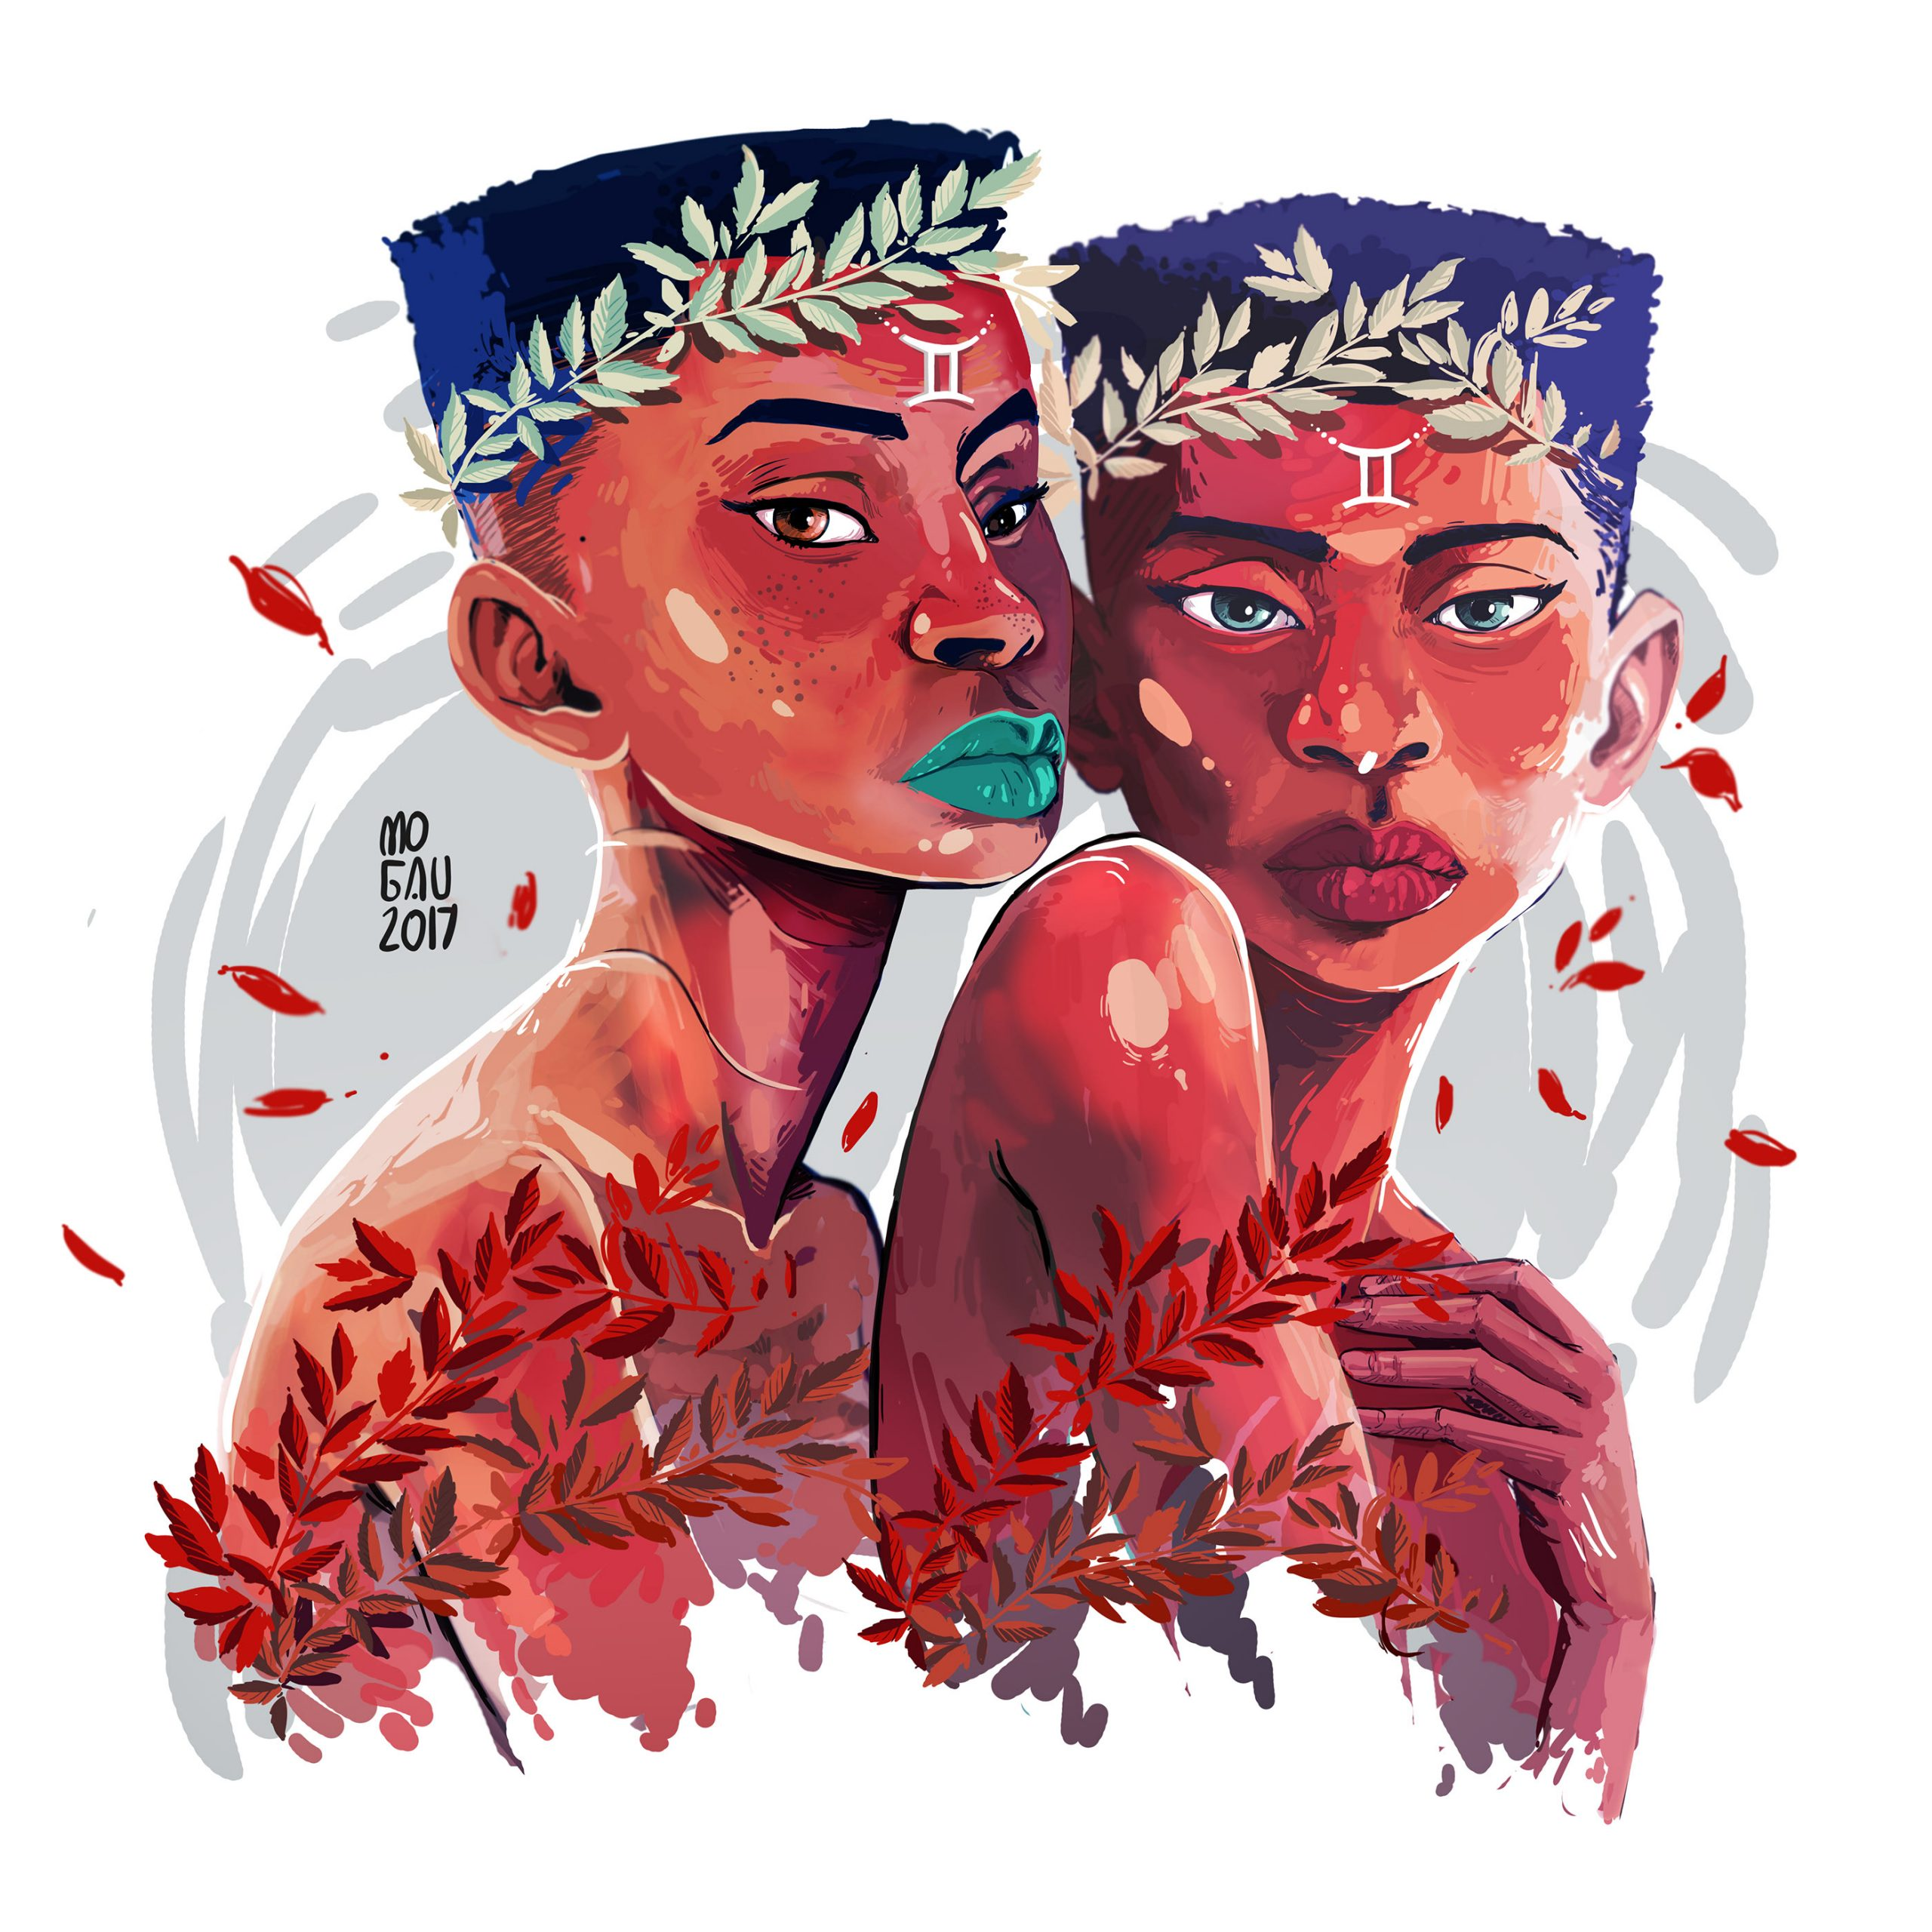 Gemini illustration by Mogau Kekana from the Star-Sign Afro sign illustration series.